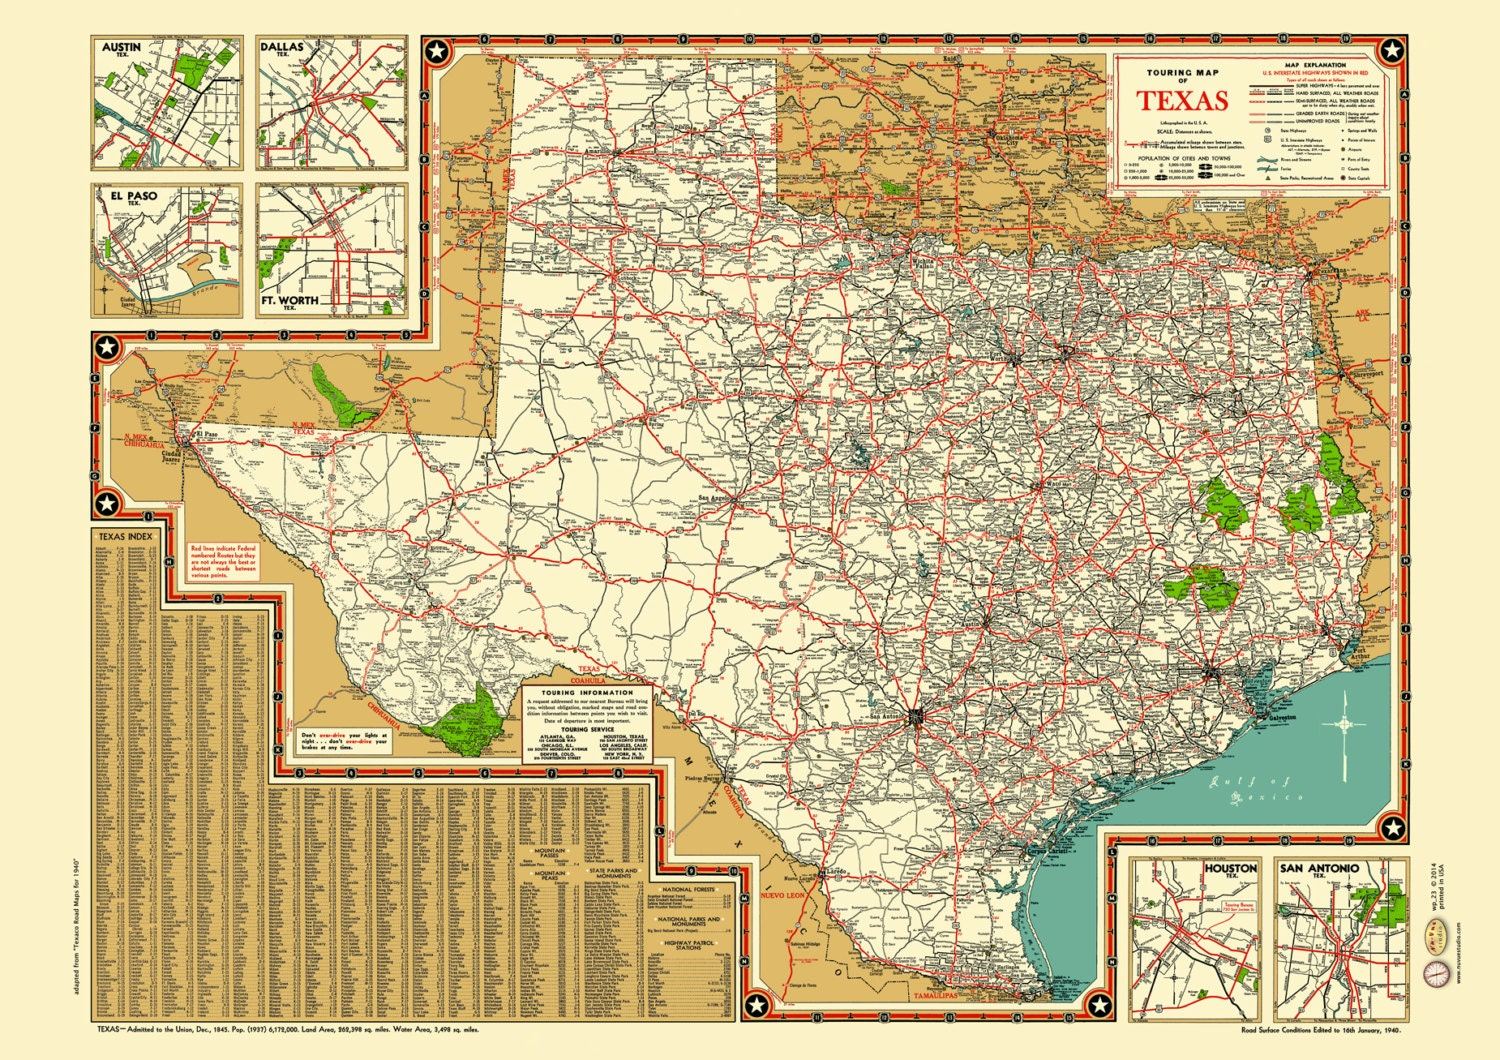 Texas Road Map 1940s Map Poster Vintage Dime Box Dallas Fort | Etsy